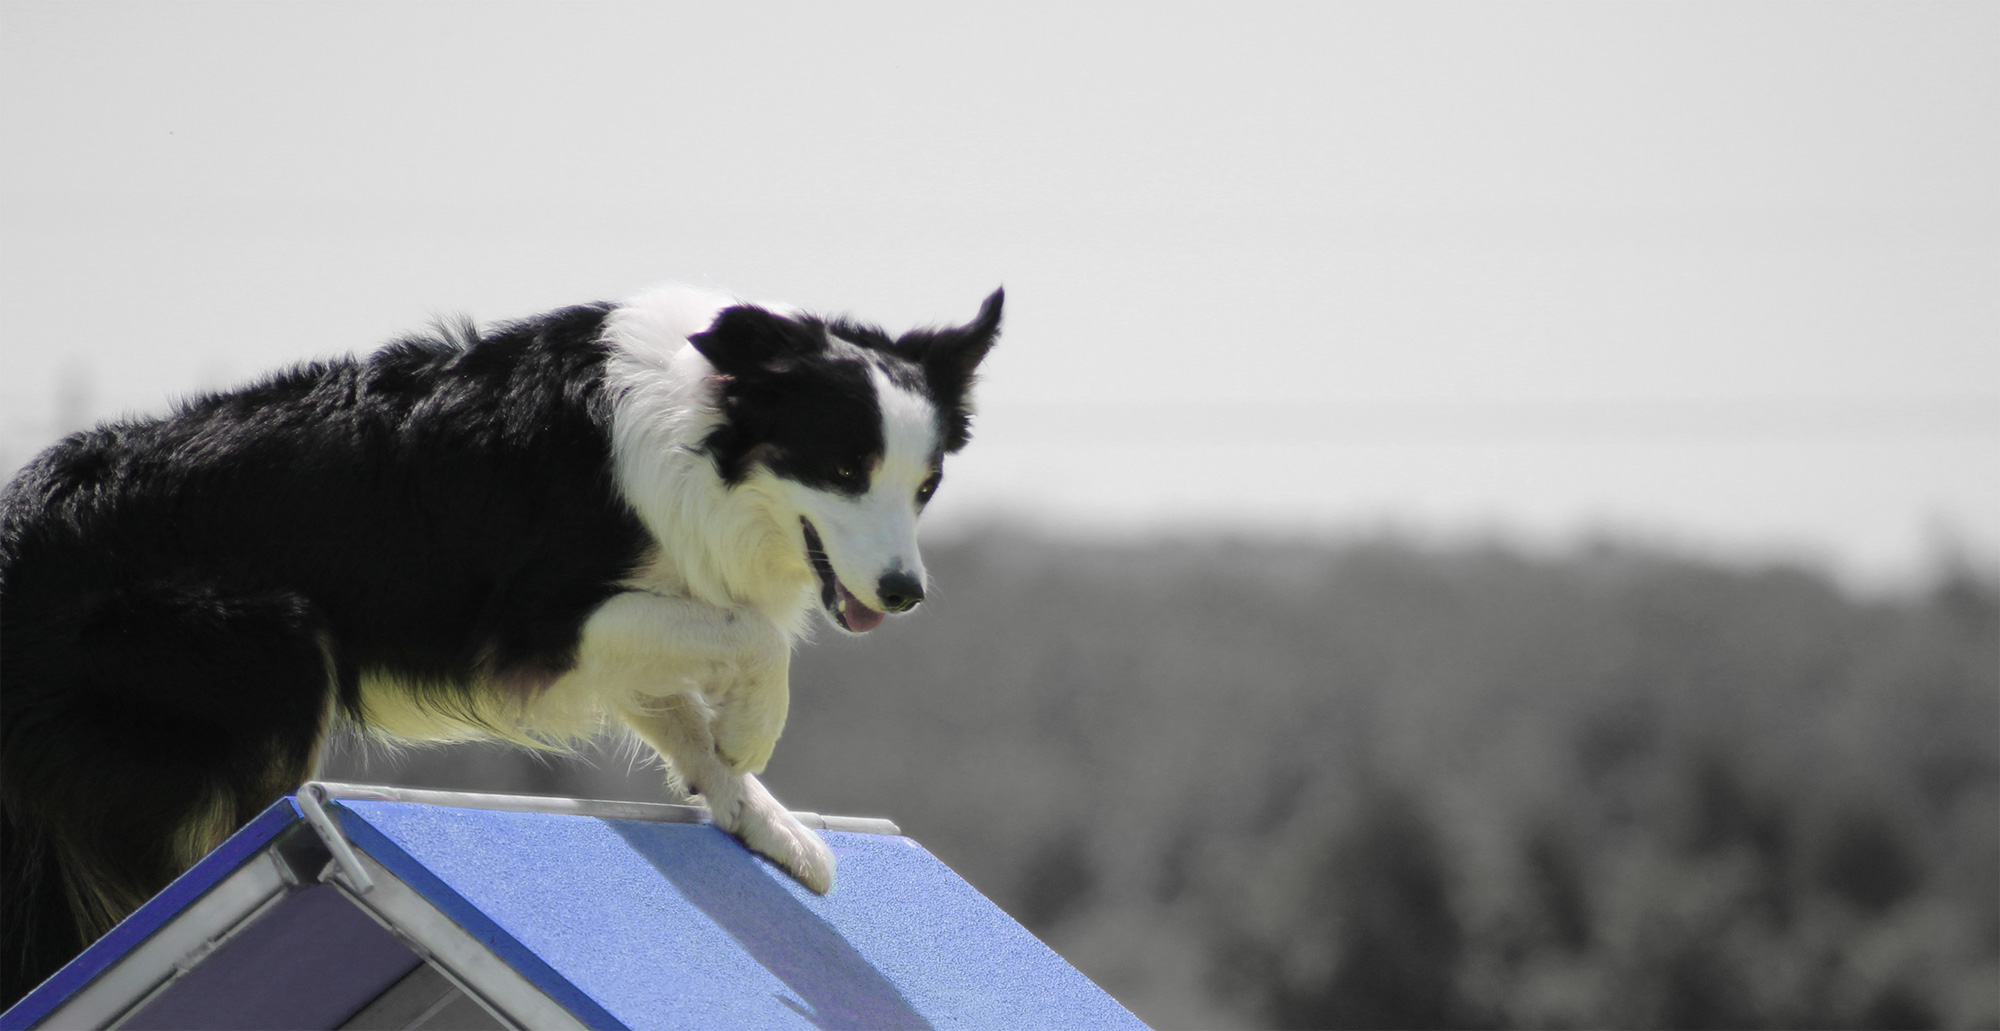 Dog climbing over agility obstacle